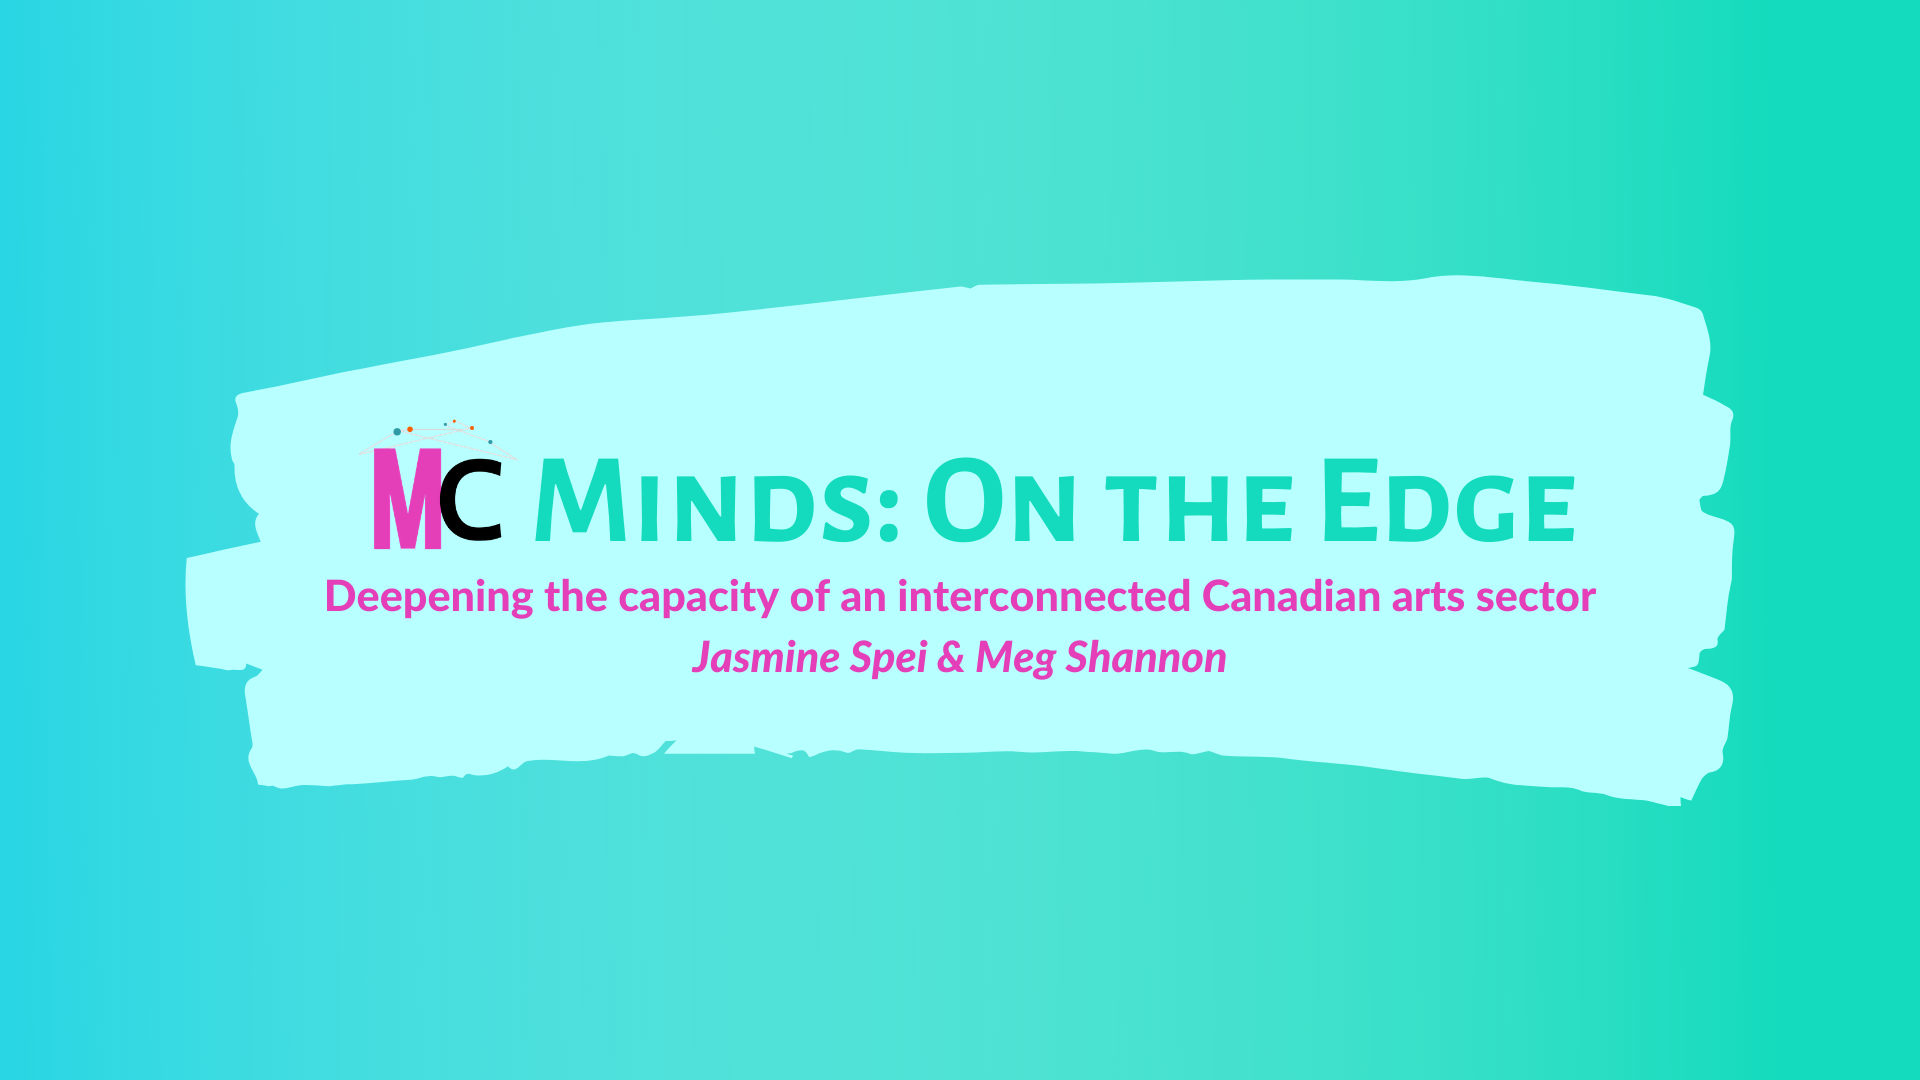 MC MINDS ON THE EDGE – Introducing MC Minds